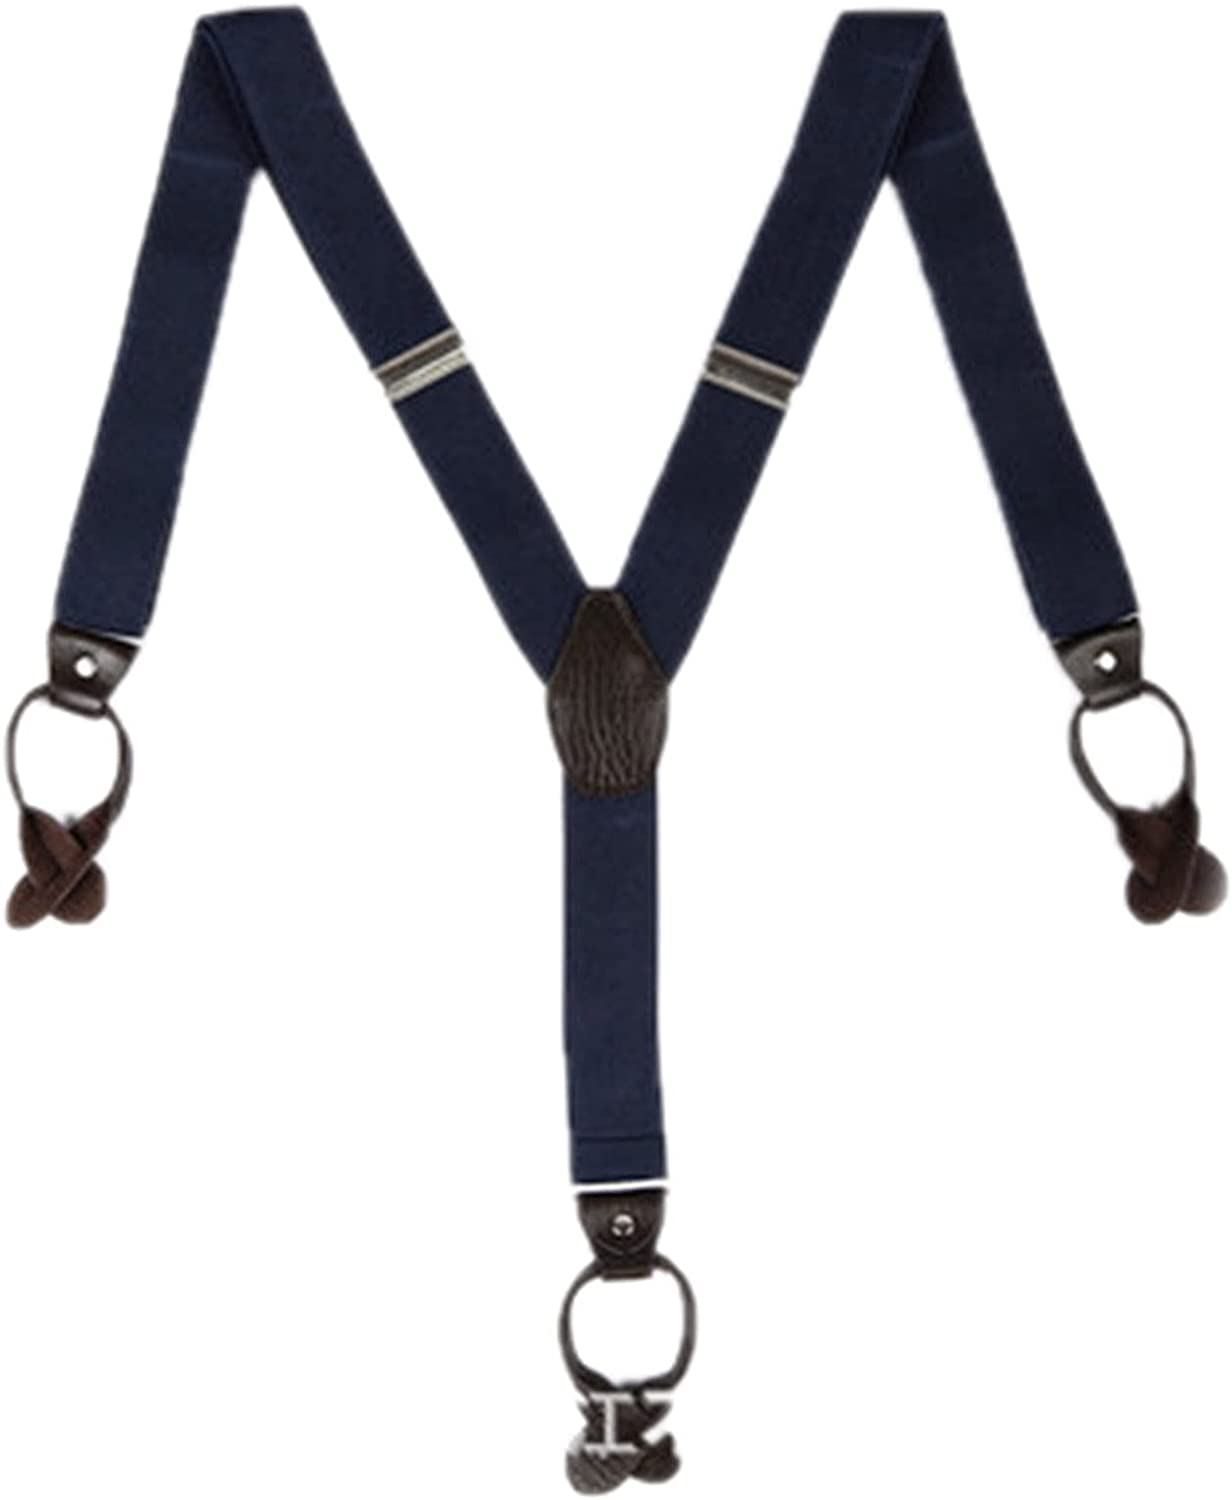 Mens Suspenders for Jeans with 3 Clips Y Back Adjustable Heavy Duty Suspenders with Hooks